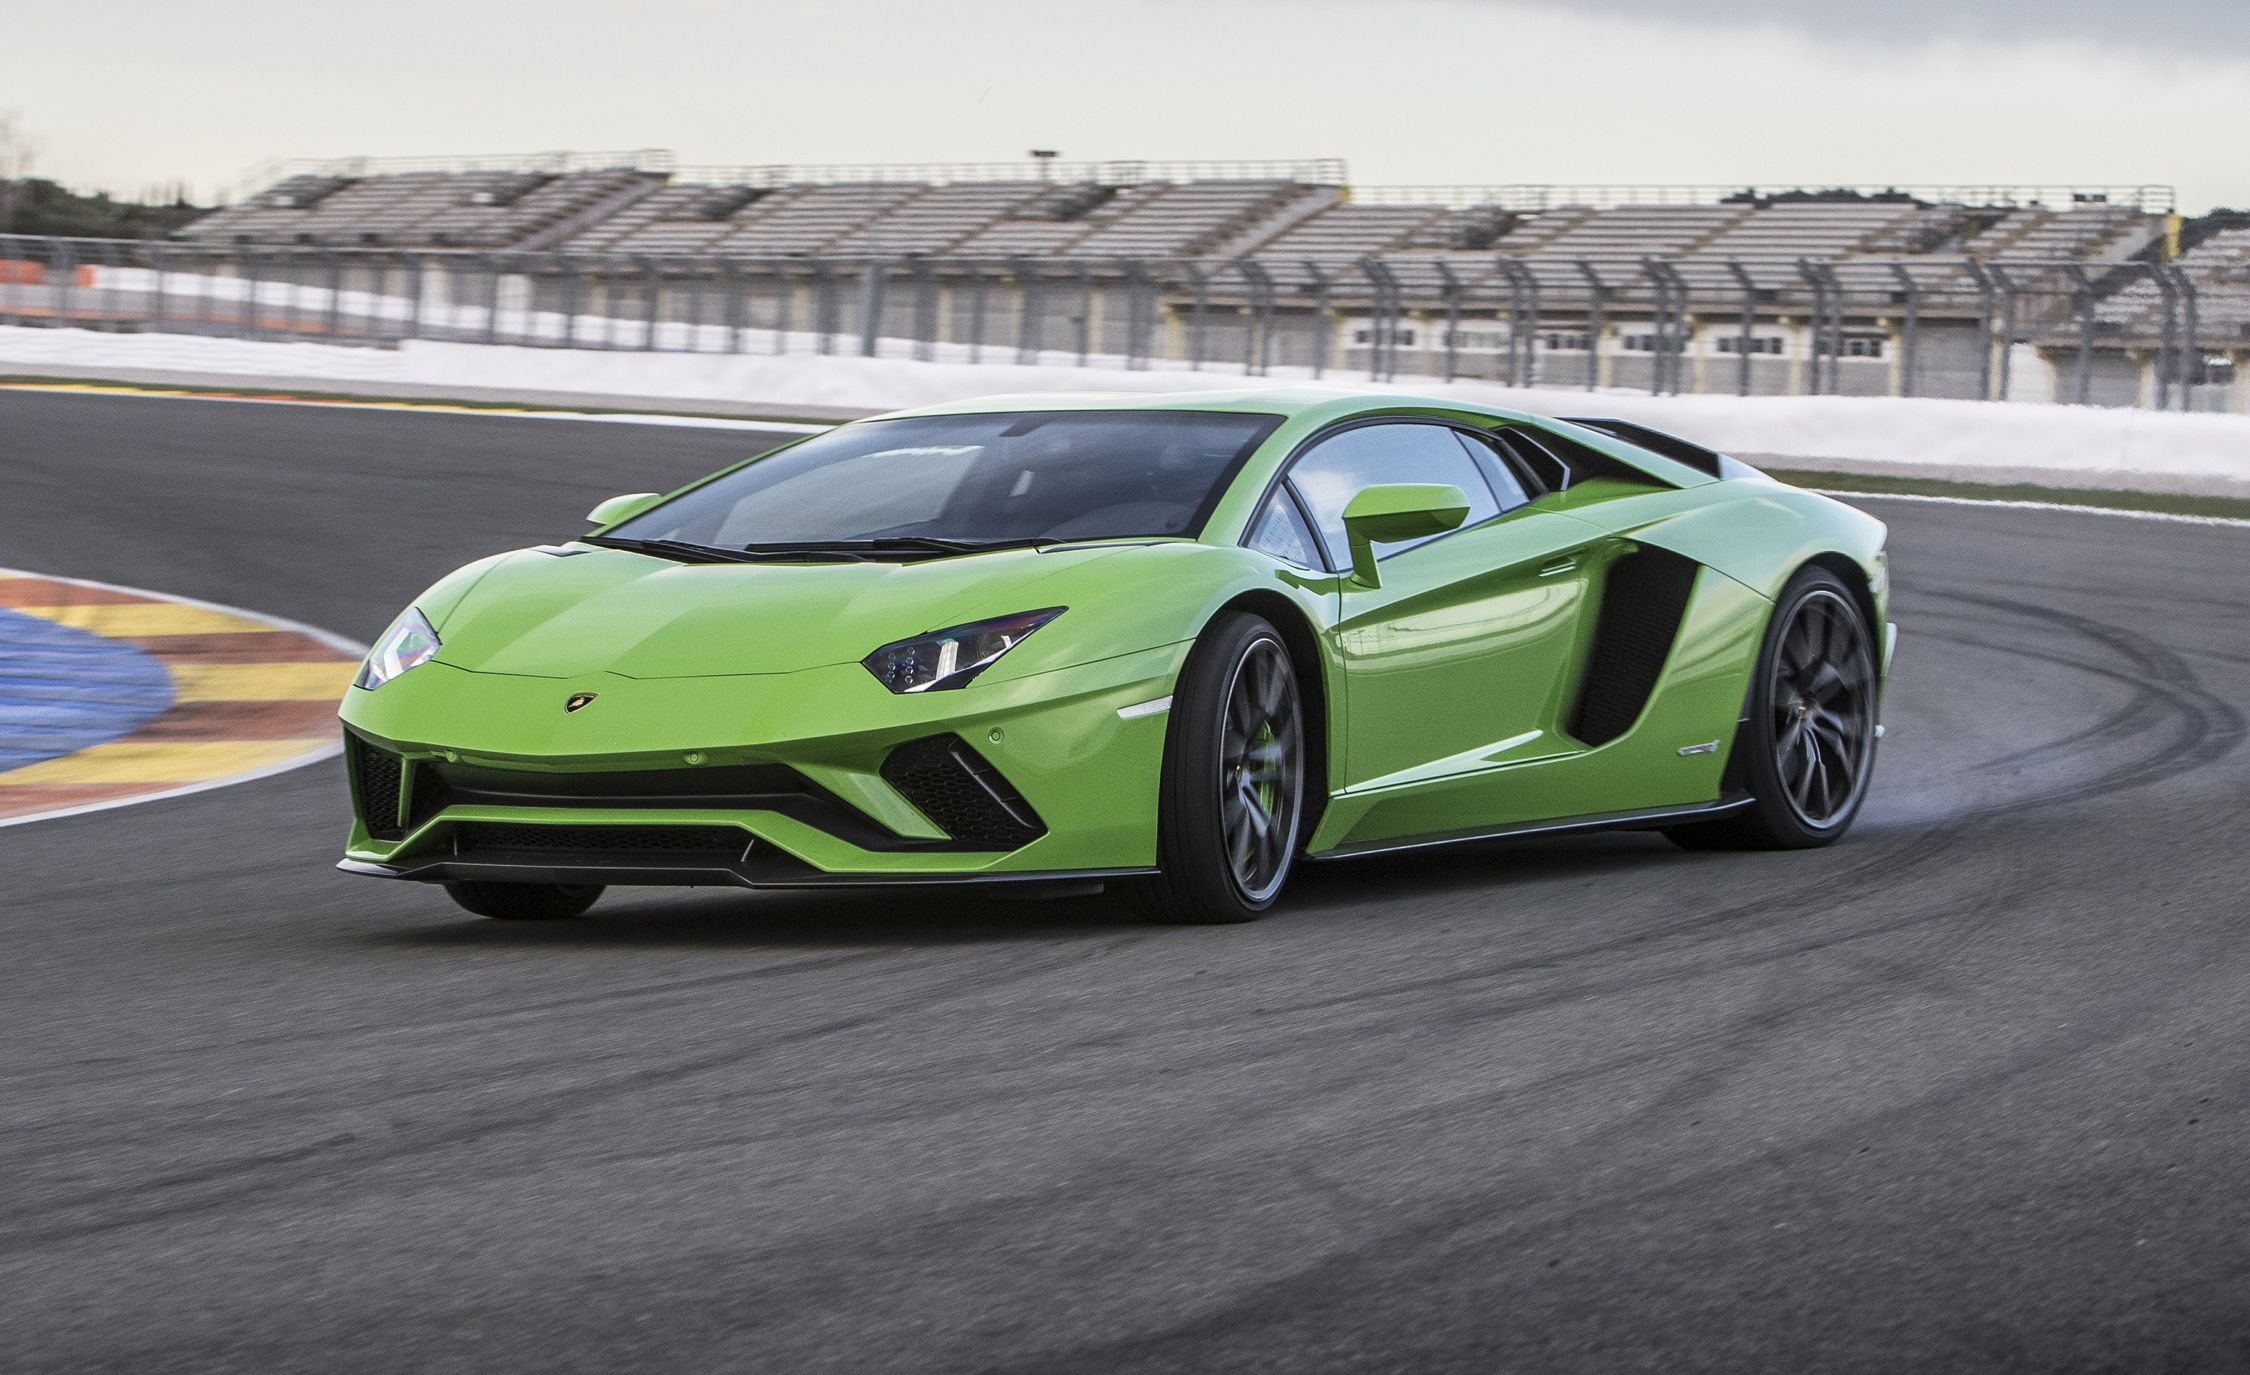 lamborghini aventador reviews | lamborghini aventador price, photos